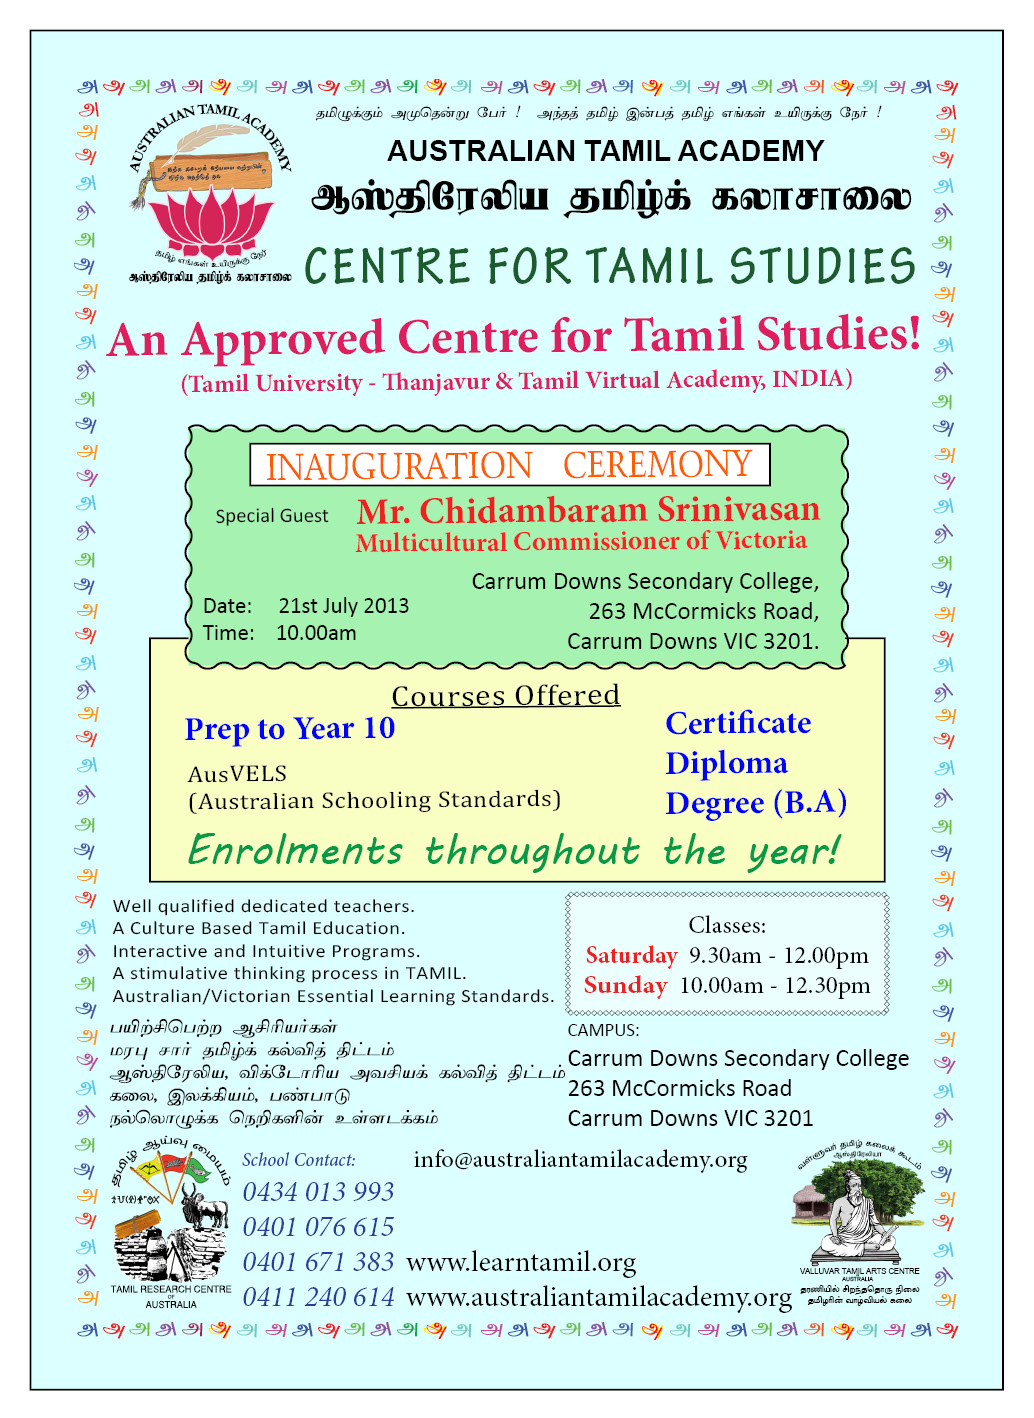 Inauguration Ceremony for B.A (Tamilology) & Sunday Tamil Classes 21 July 2013